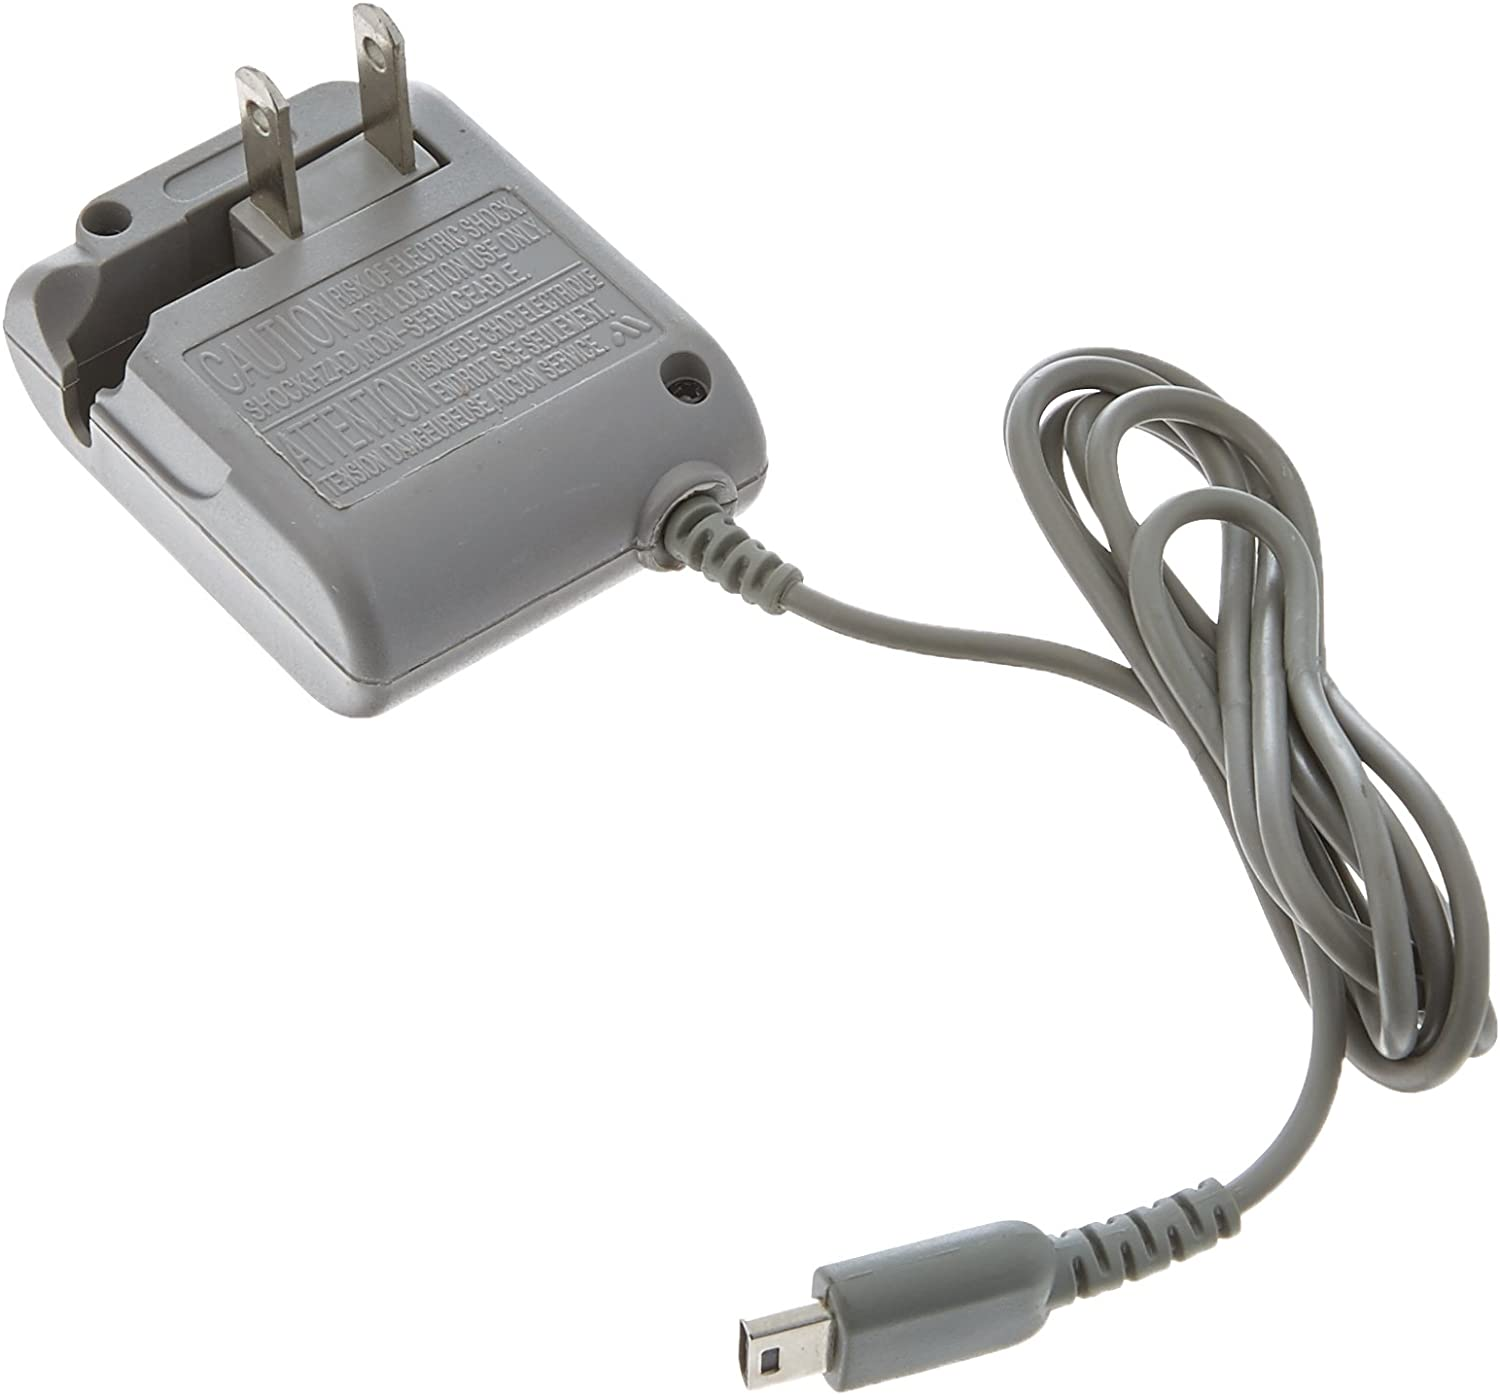 Amazon.com: Flip Travel Charger for Nintendo DS Lite: Video ...